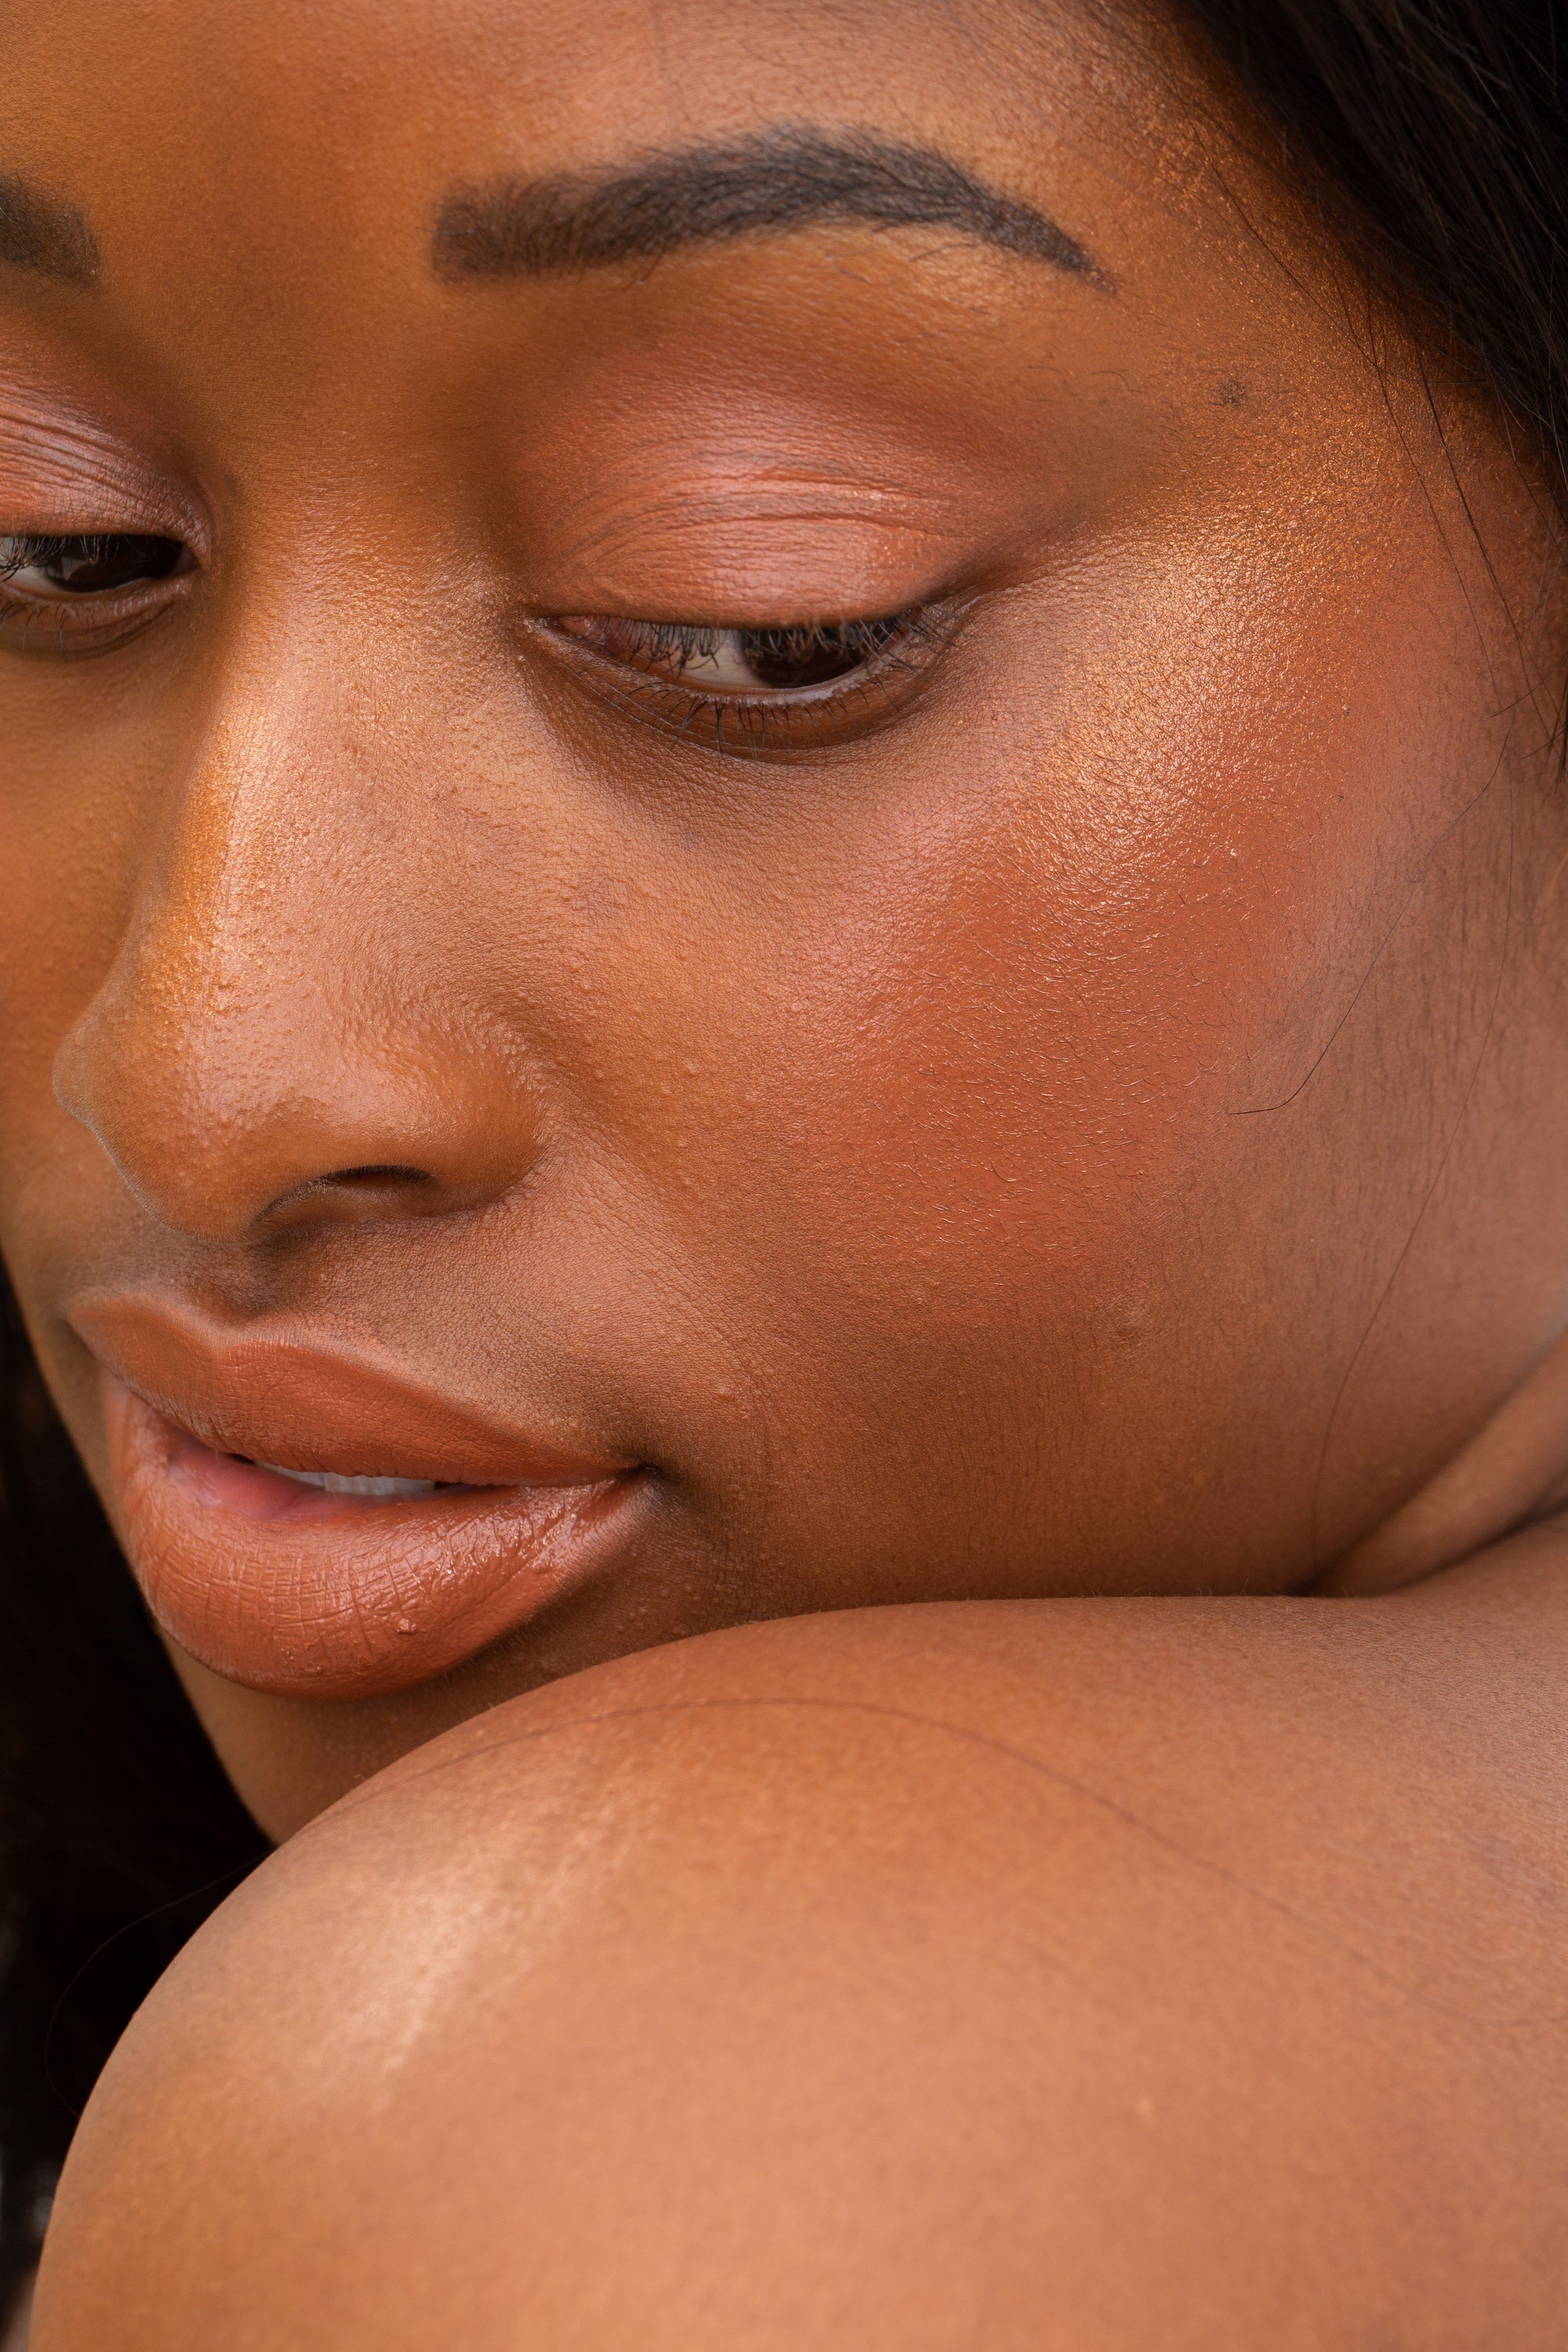 swatch of skin dew in cognac on cheekbones of deep complexion